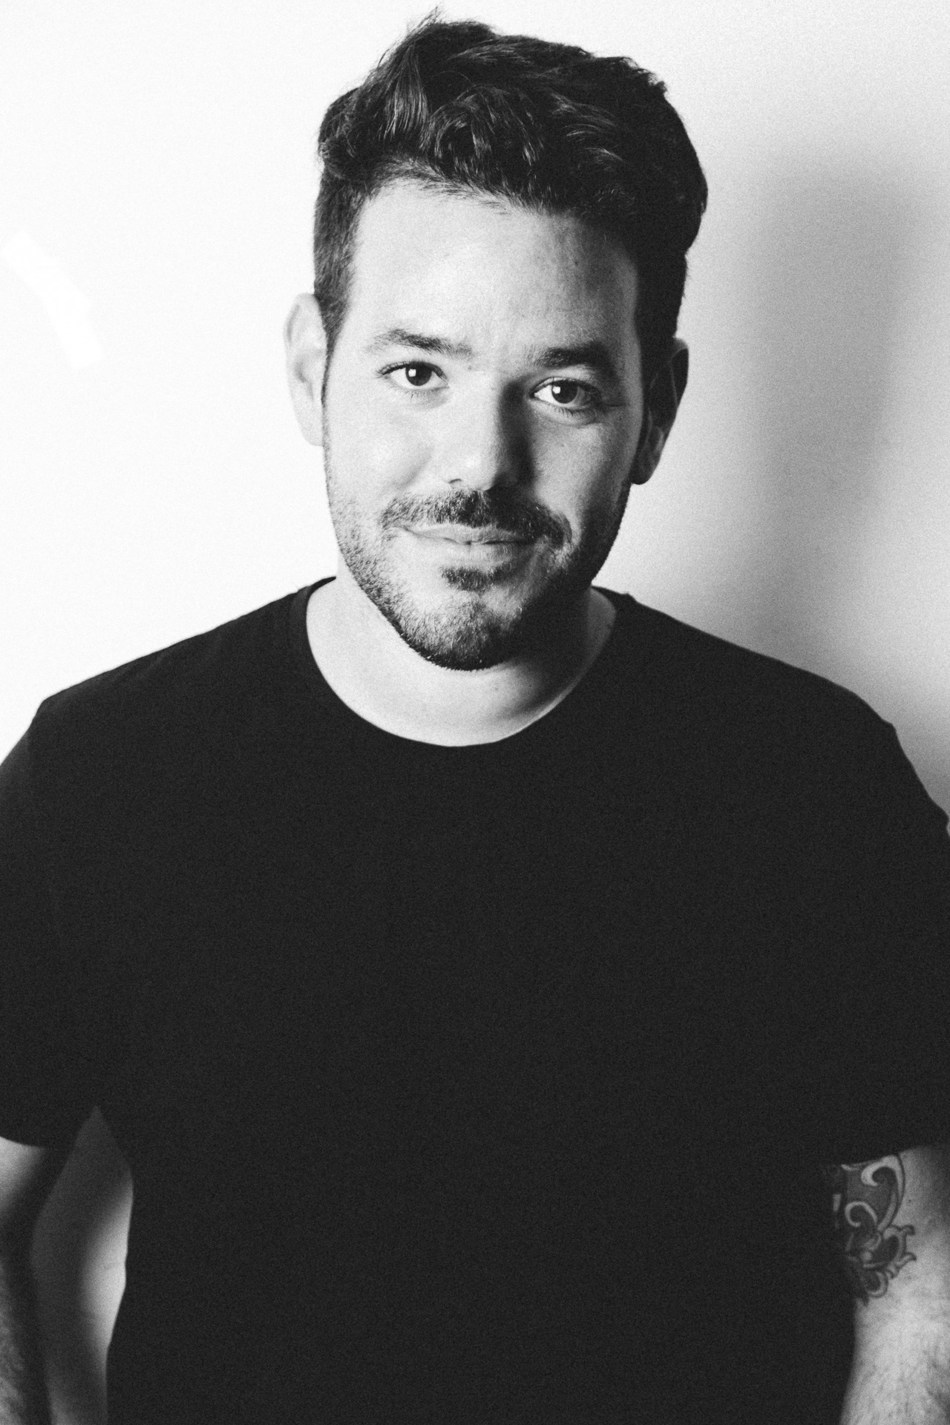 Erez Attias, brand designer at Wix, to speak at the AWWWARDS Berlin Digital Thinkers Conference